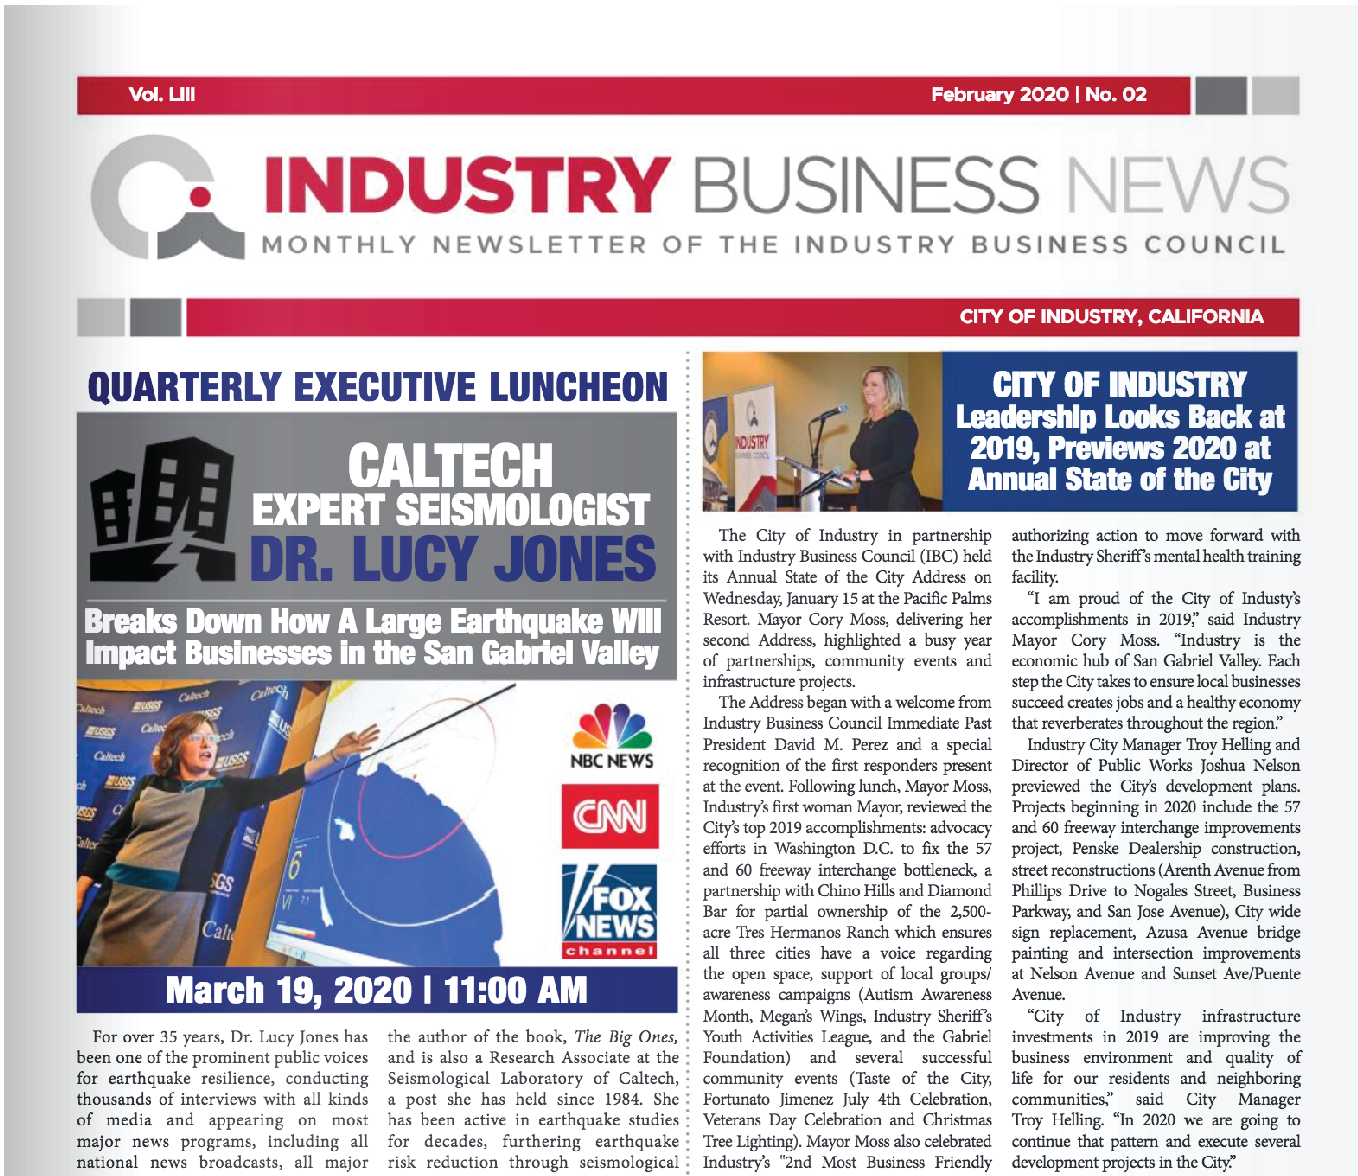 NEWSLETTER | 2020 FEBRUARY INDUSTRY BUSINESS NEWS